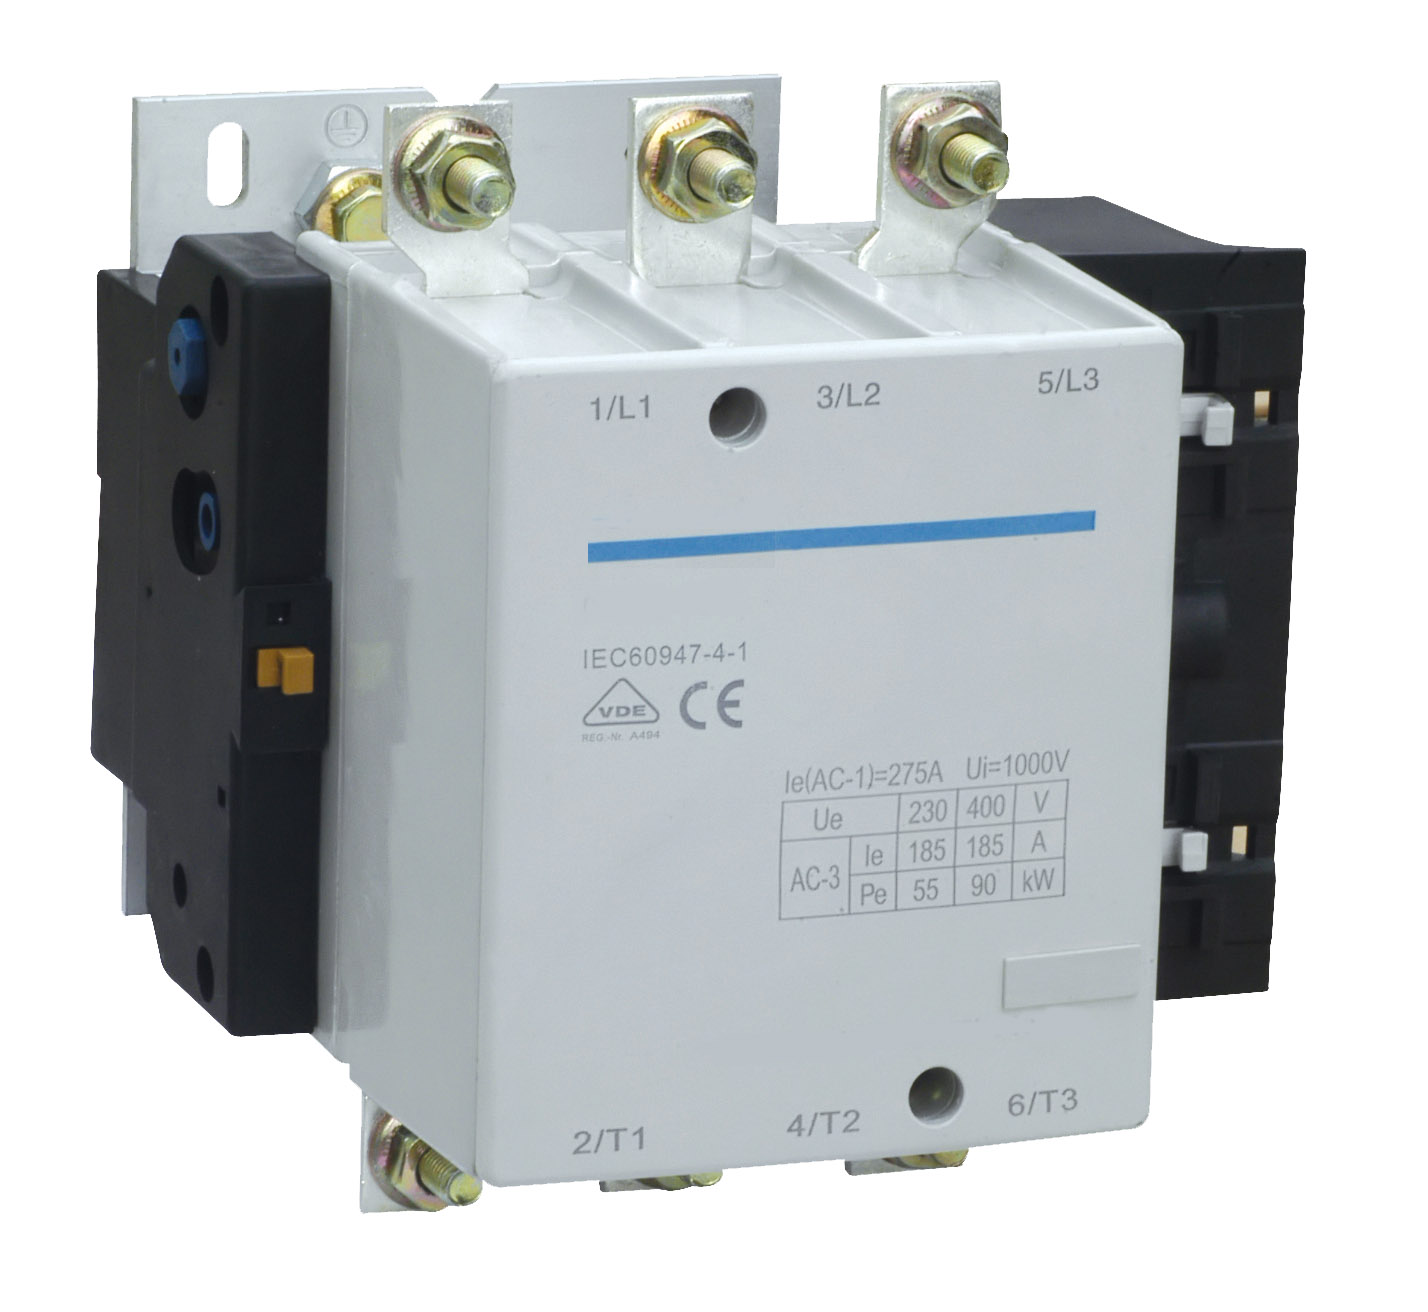 allen bradley 100 d140 contactor wiring diagram polo 9n siemens 3tf ge cl and cutler hammer ce cross reference